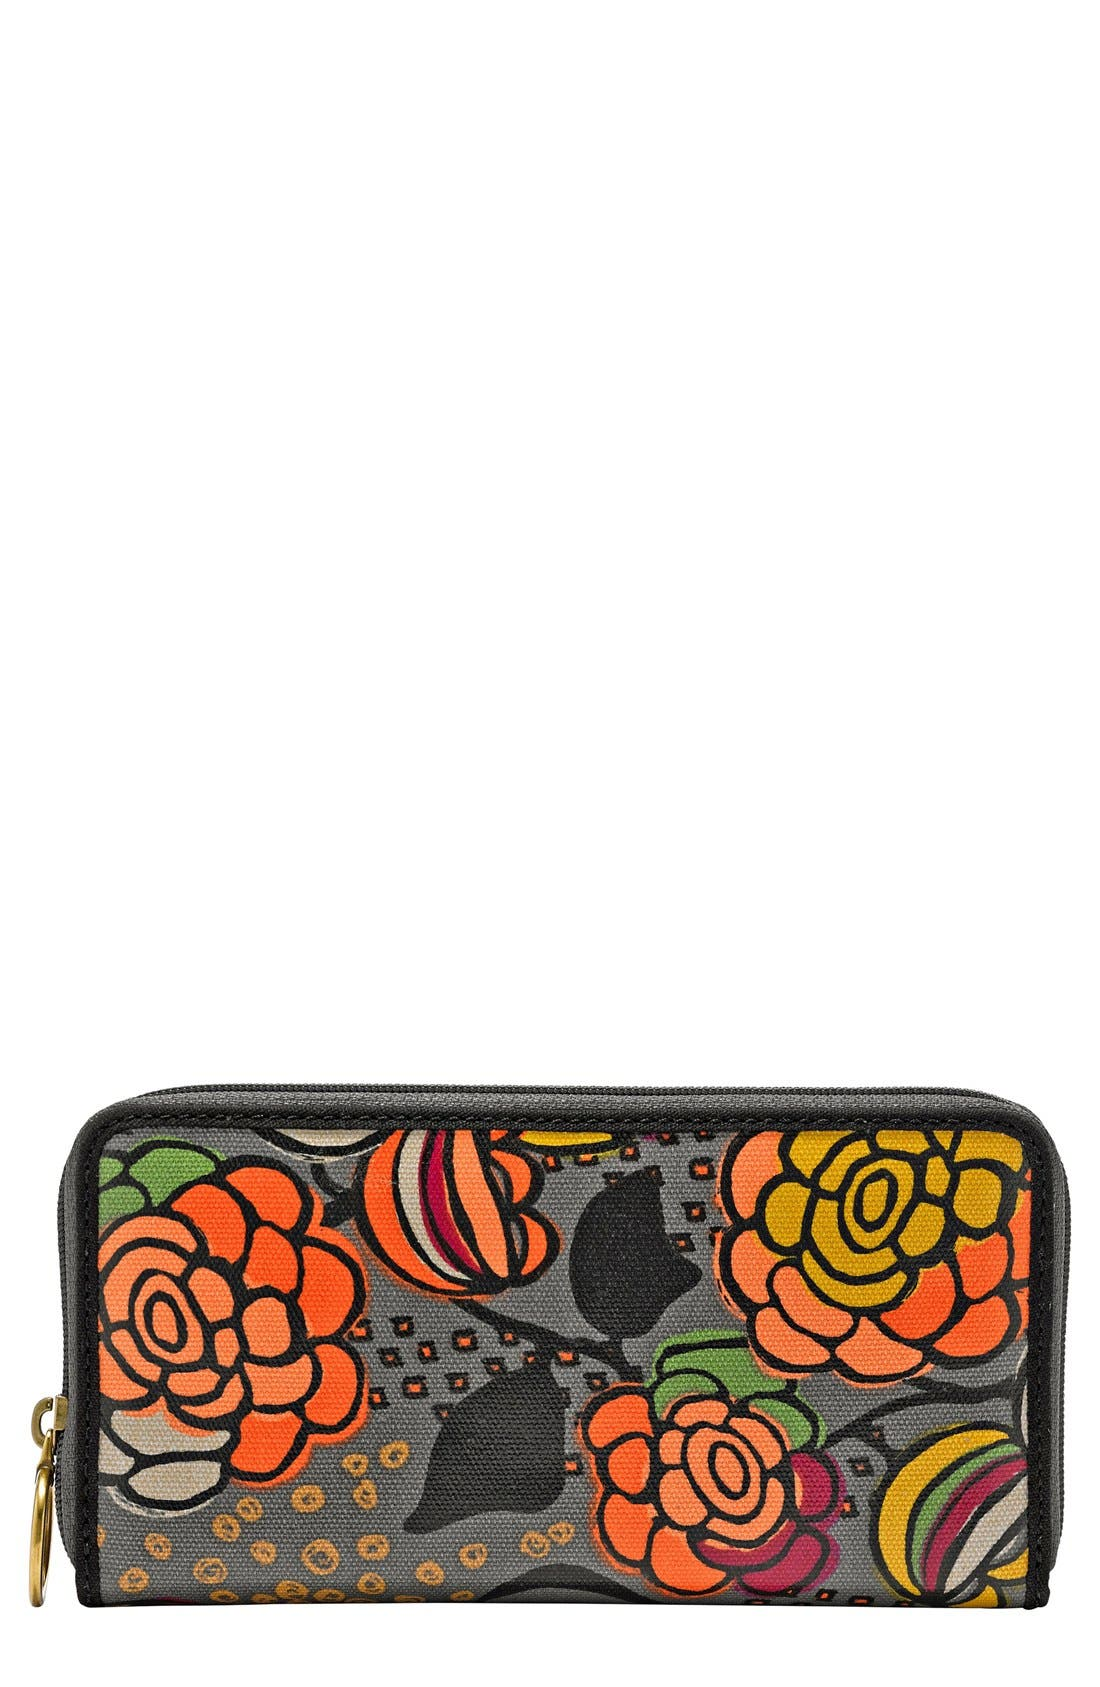 Alternate Image 1 Selected - Fossil 'Key-Per' Print Coated Canvas Zip Around Clutch Wallet